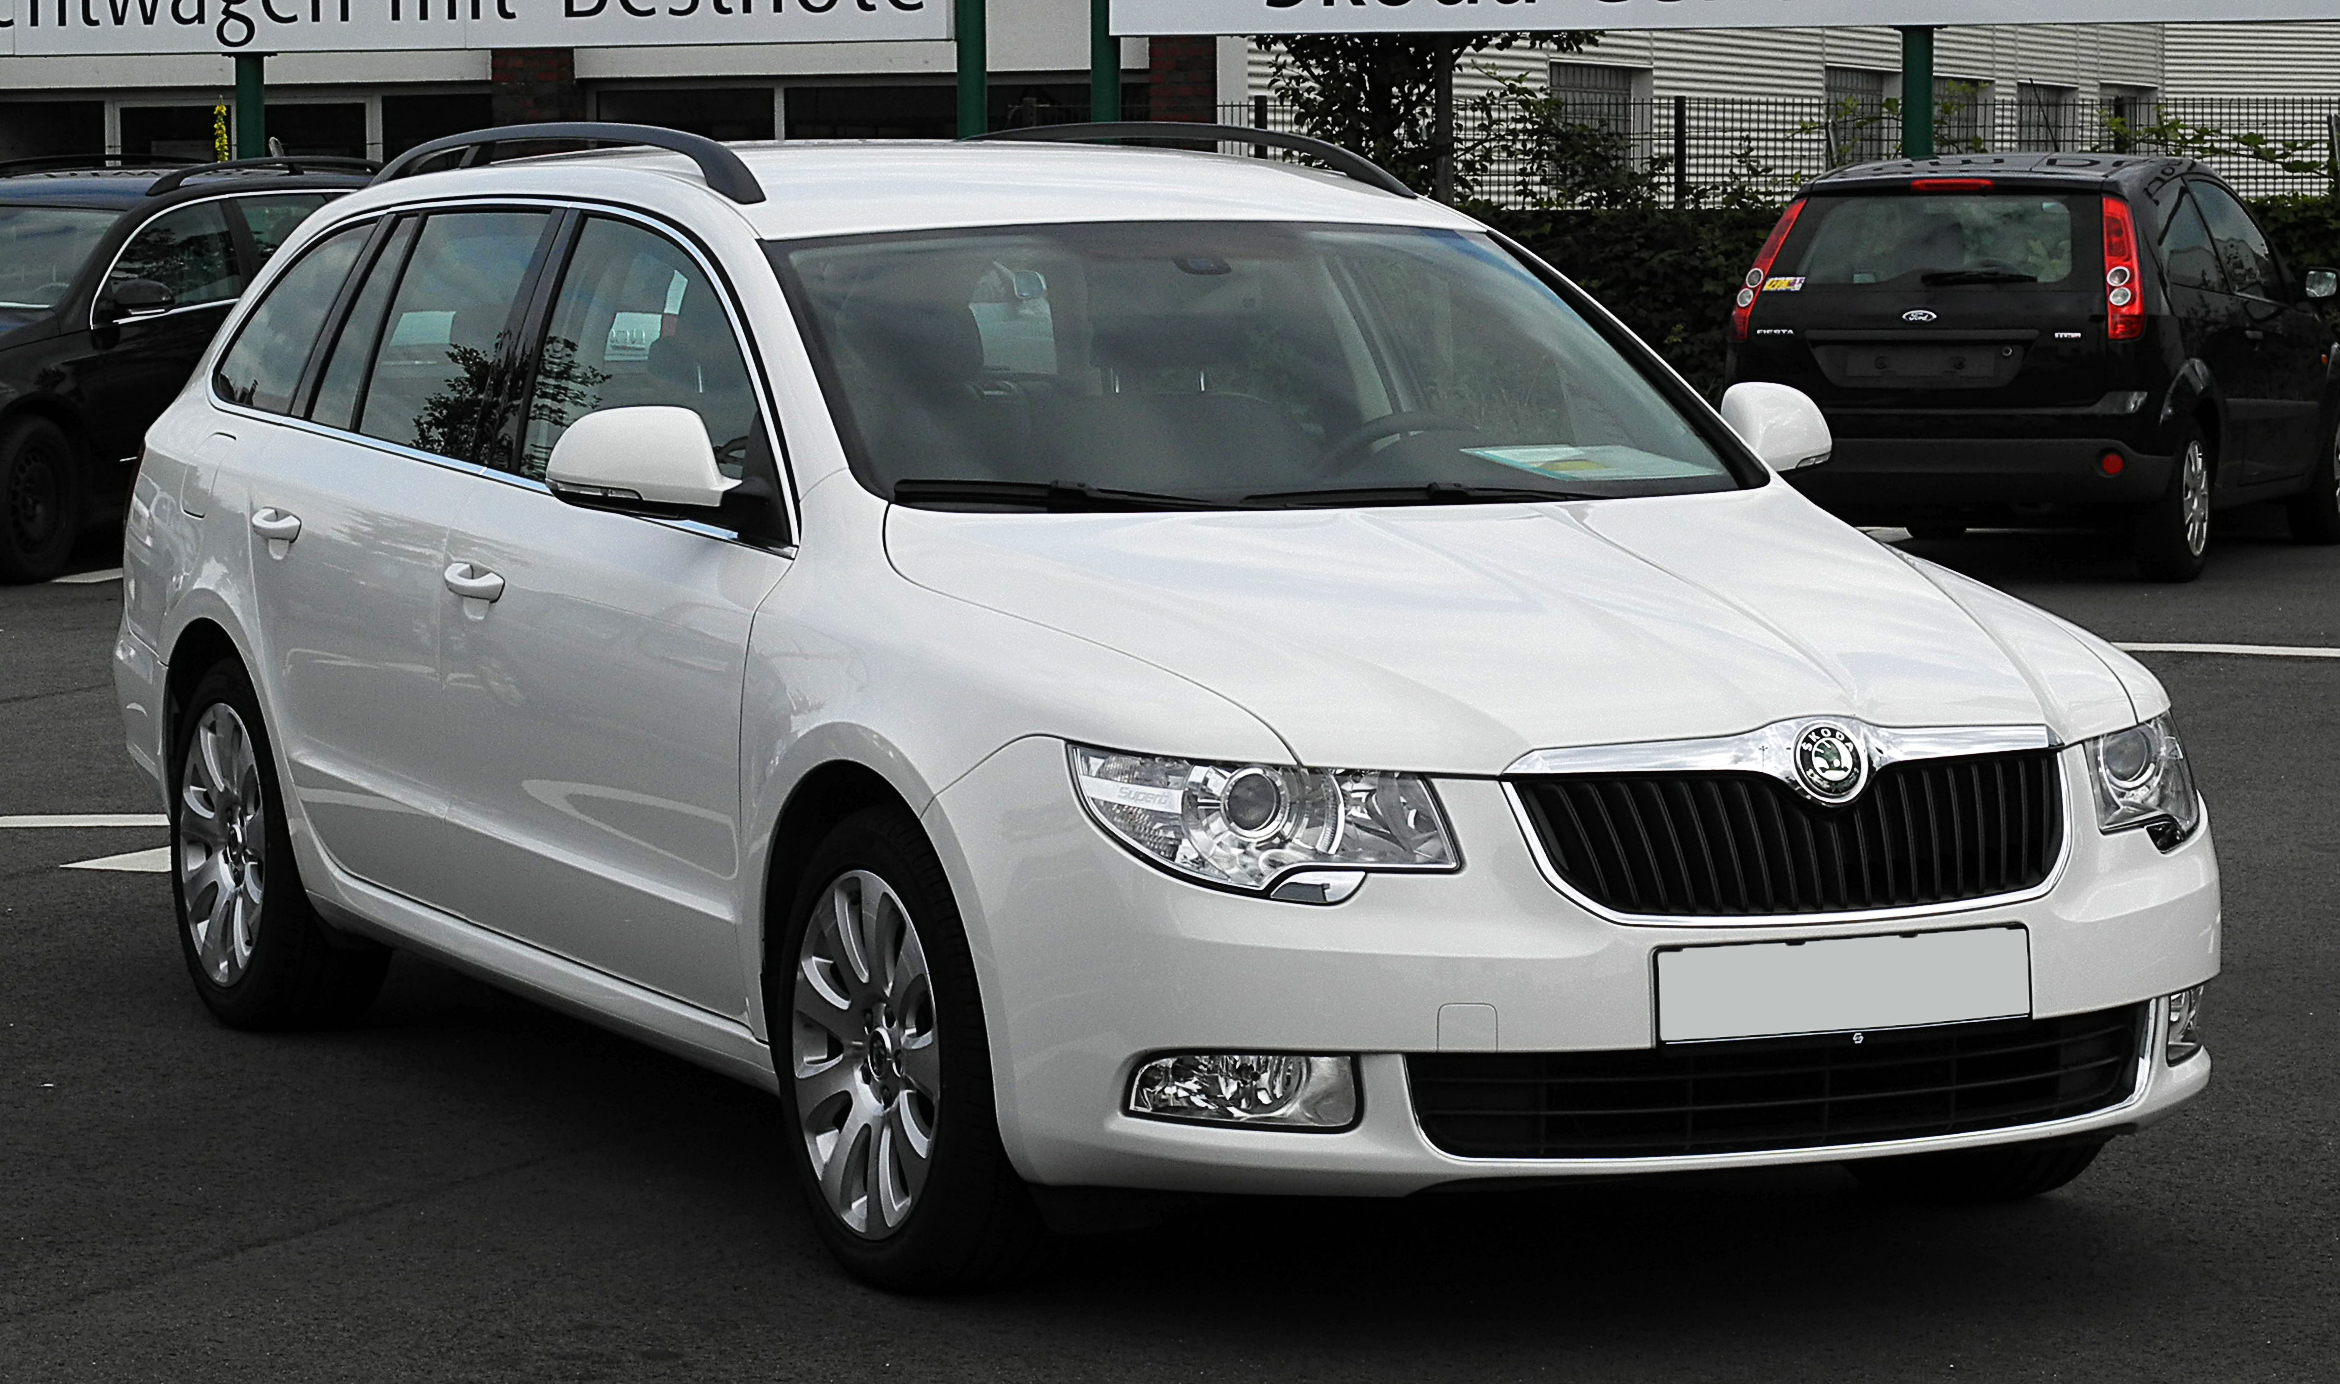 file skoda superb combi 2 0 tdi ambition ii frontansicht 2 juli 2011 d. Black Bedroom Furniture Sets. Home Design Ideas